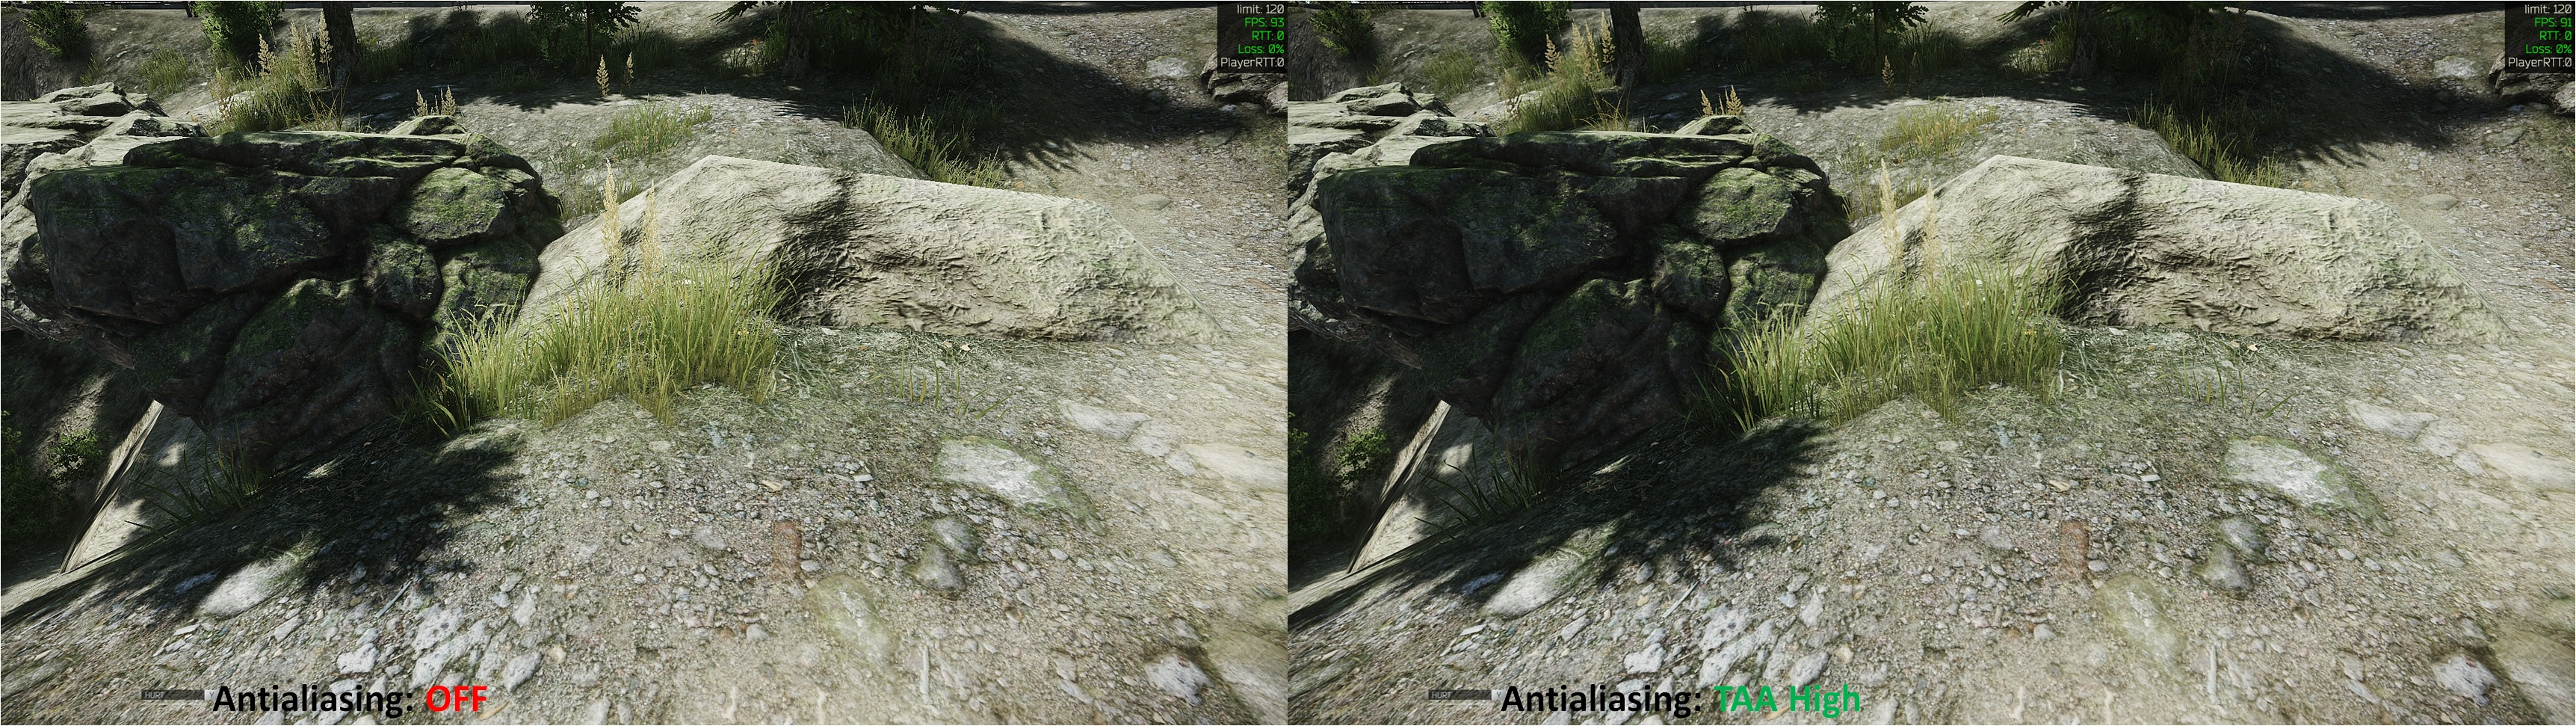 Tarkov Antialiasing Comparison